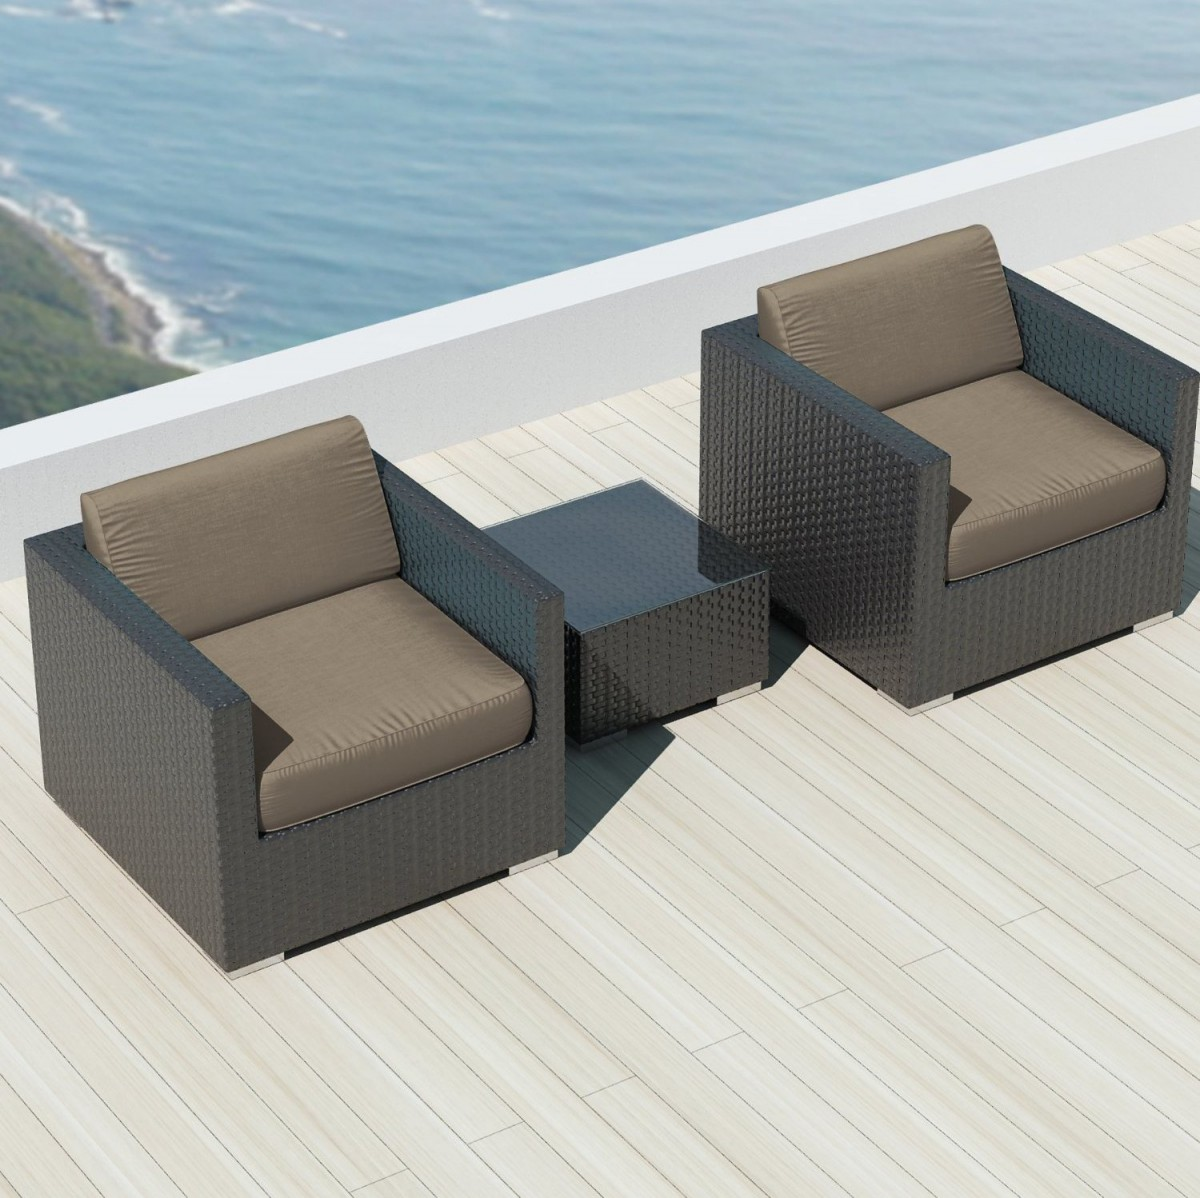 Luxxella bistro 3pc sunbrella outdoor sectional sofa set for Outdoor sofa